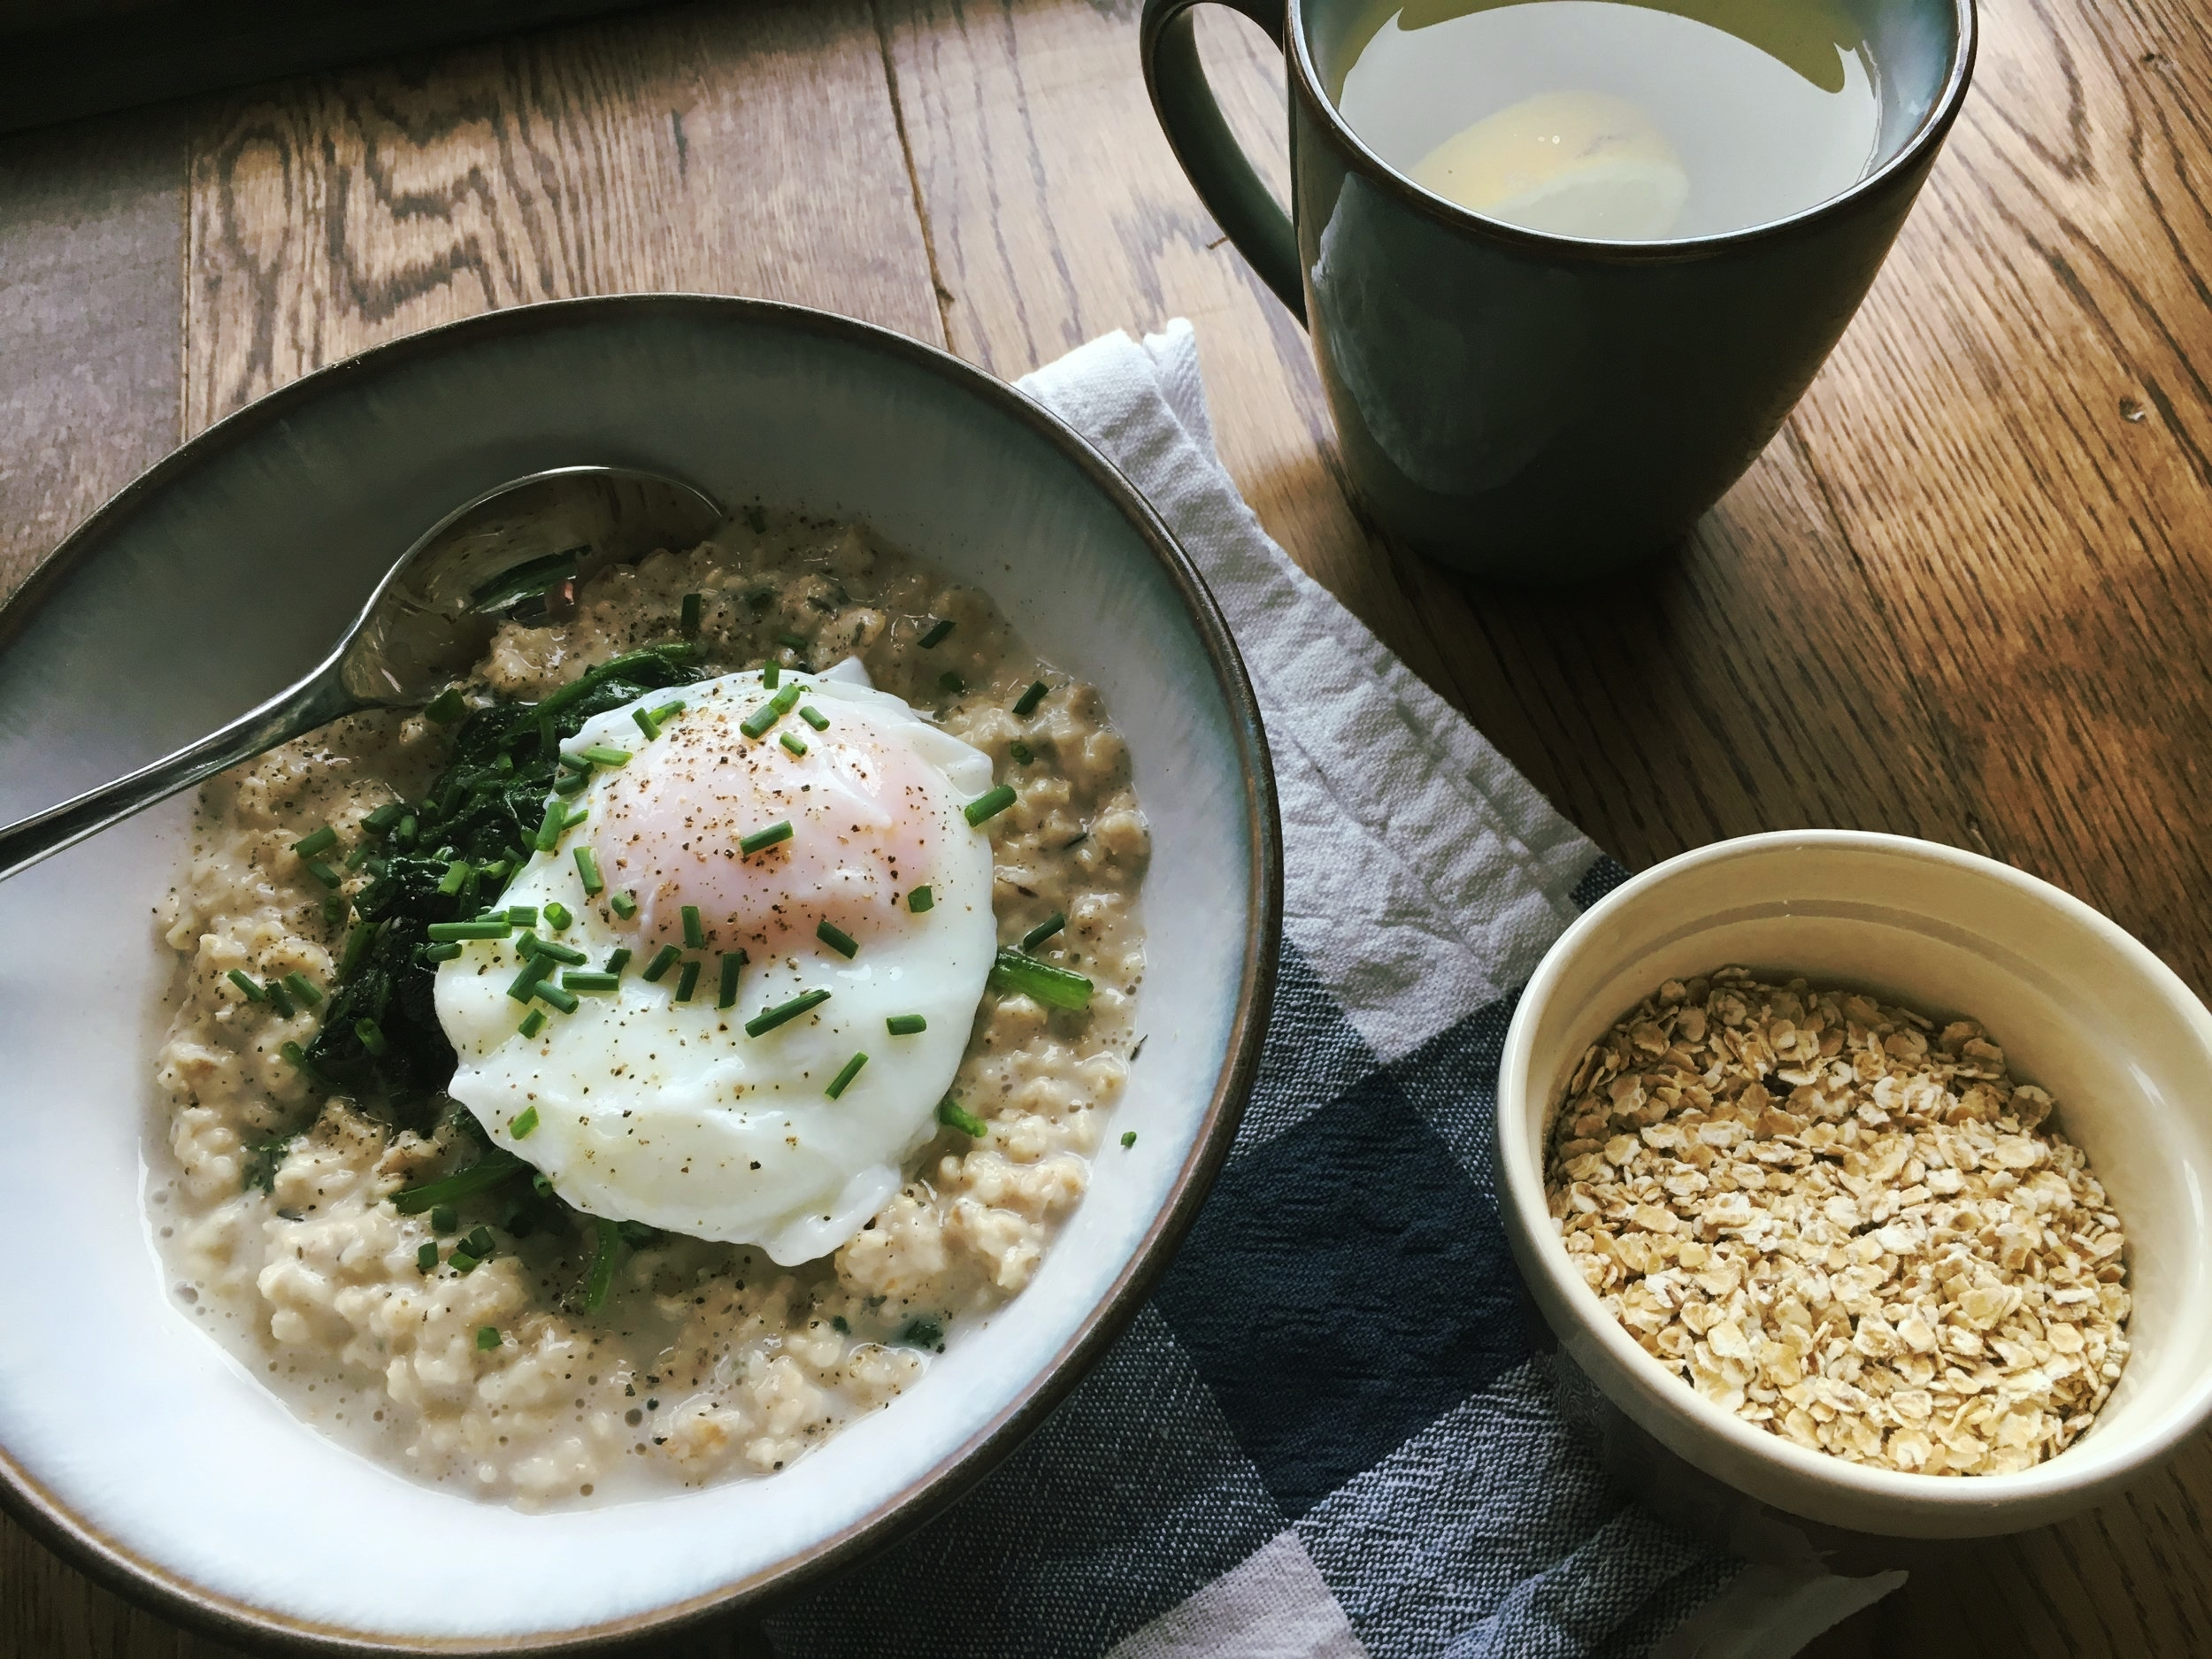 Savoury porridge recipe | The Flourishing Pantry